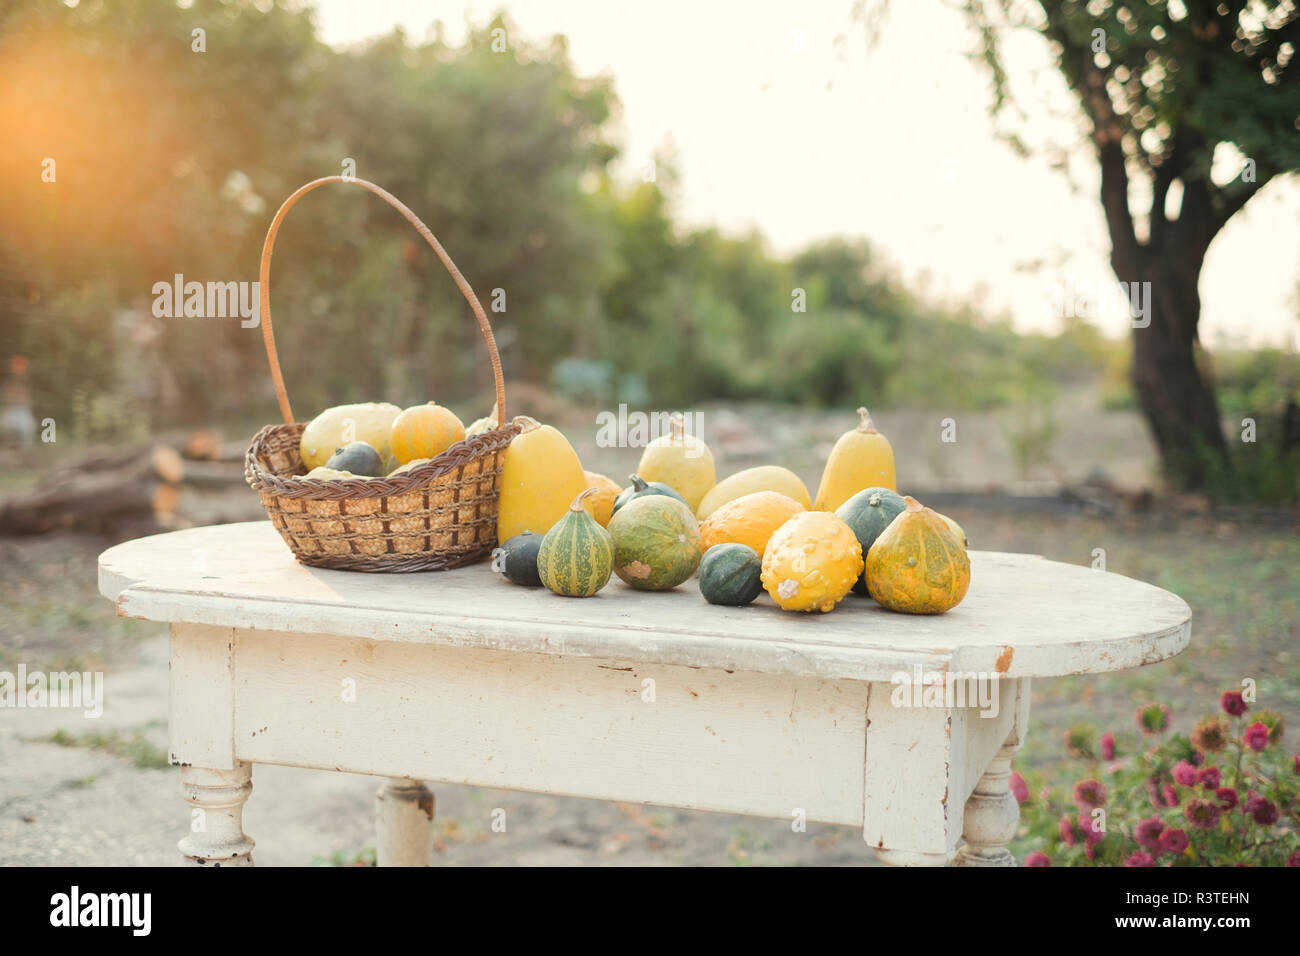 Autumn pumpkins on a wooden table in the garden - Stock Image